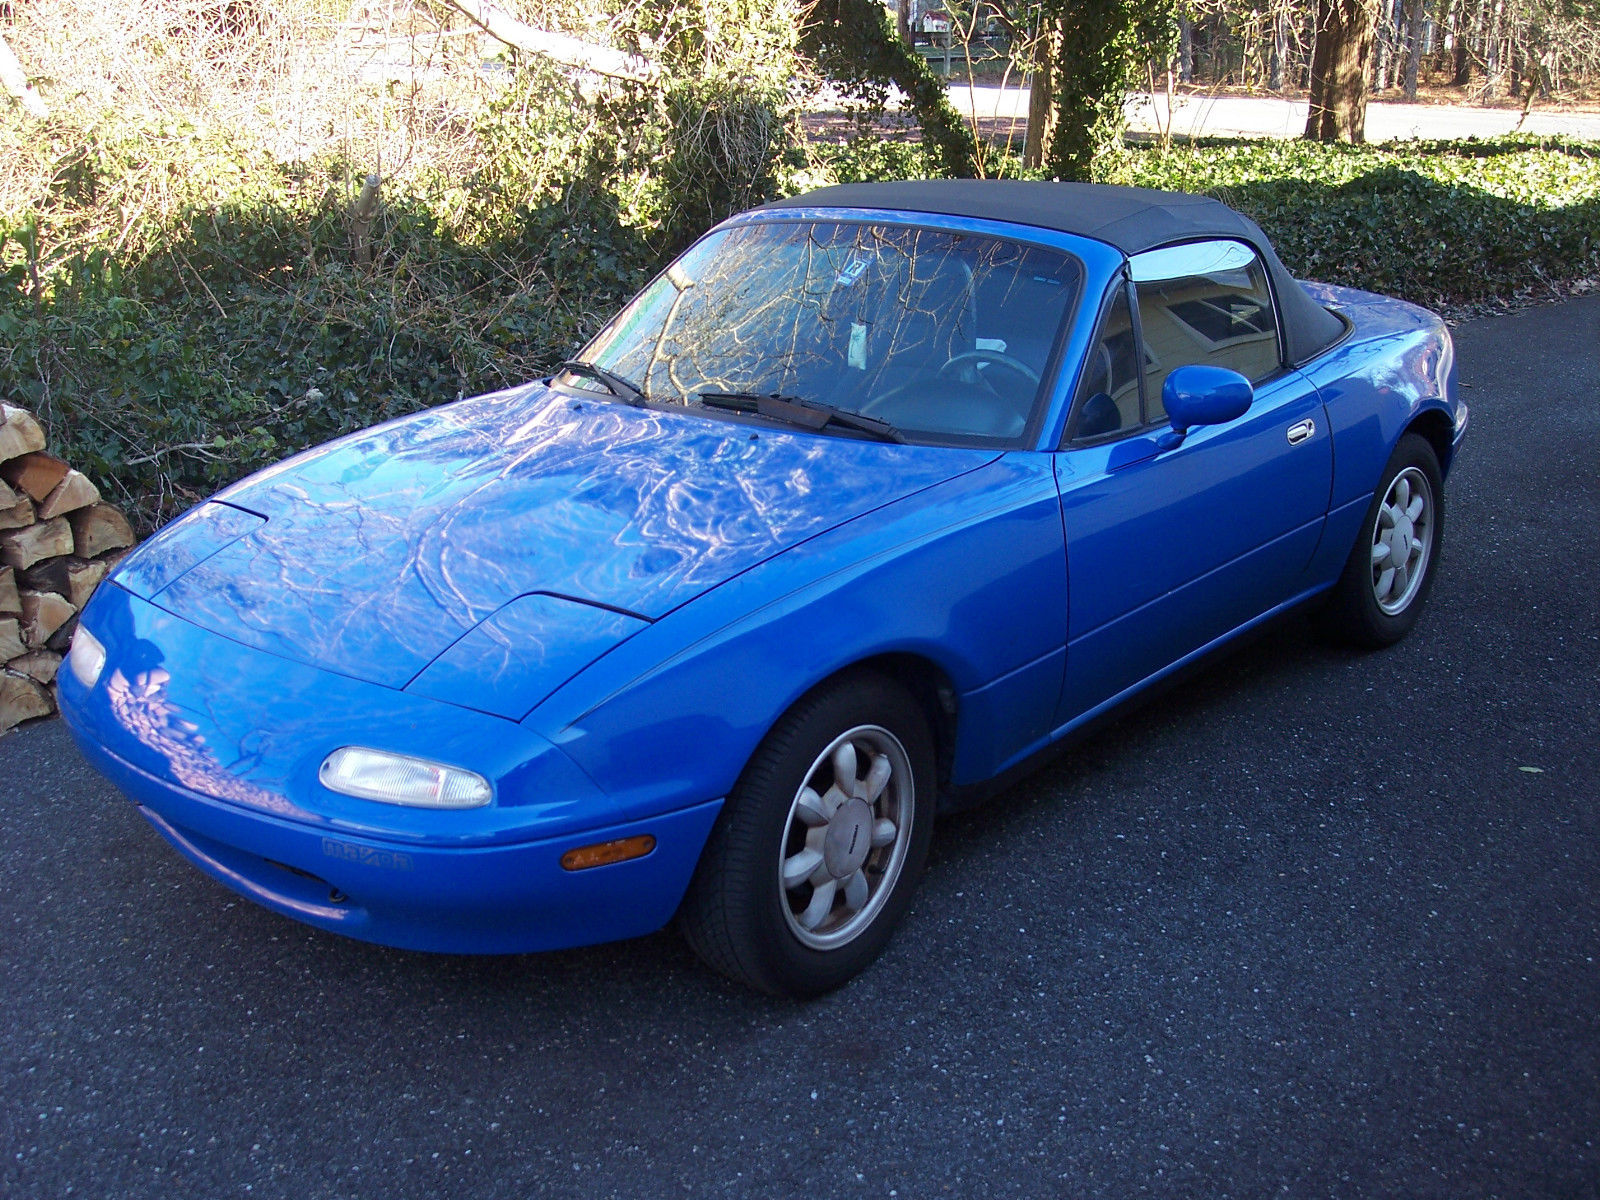 1990 mazda miata base convertible 2 door 1 6l for sale in bethany beach delaware united states. Black Bedroom Furniture Sets. Home Design Ideas